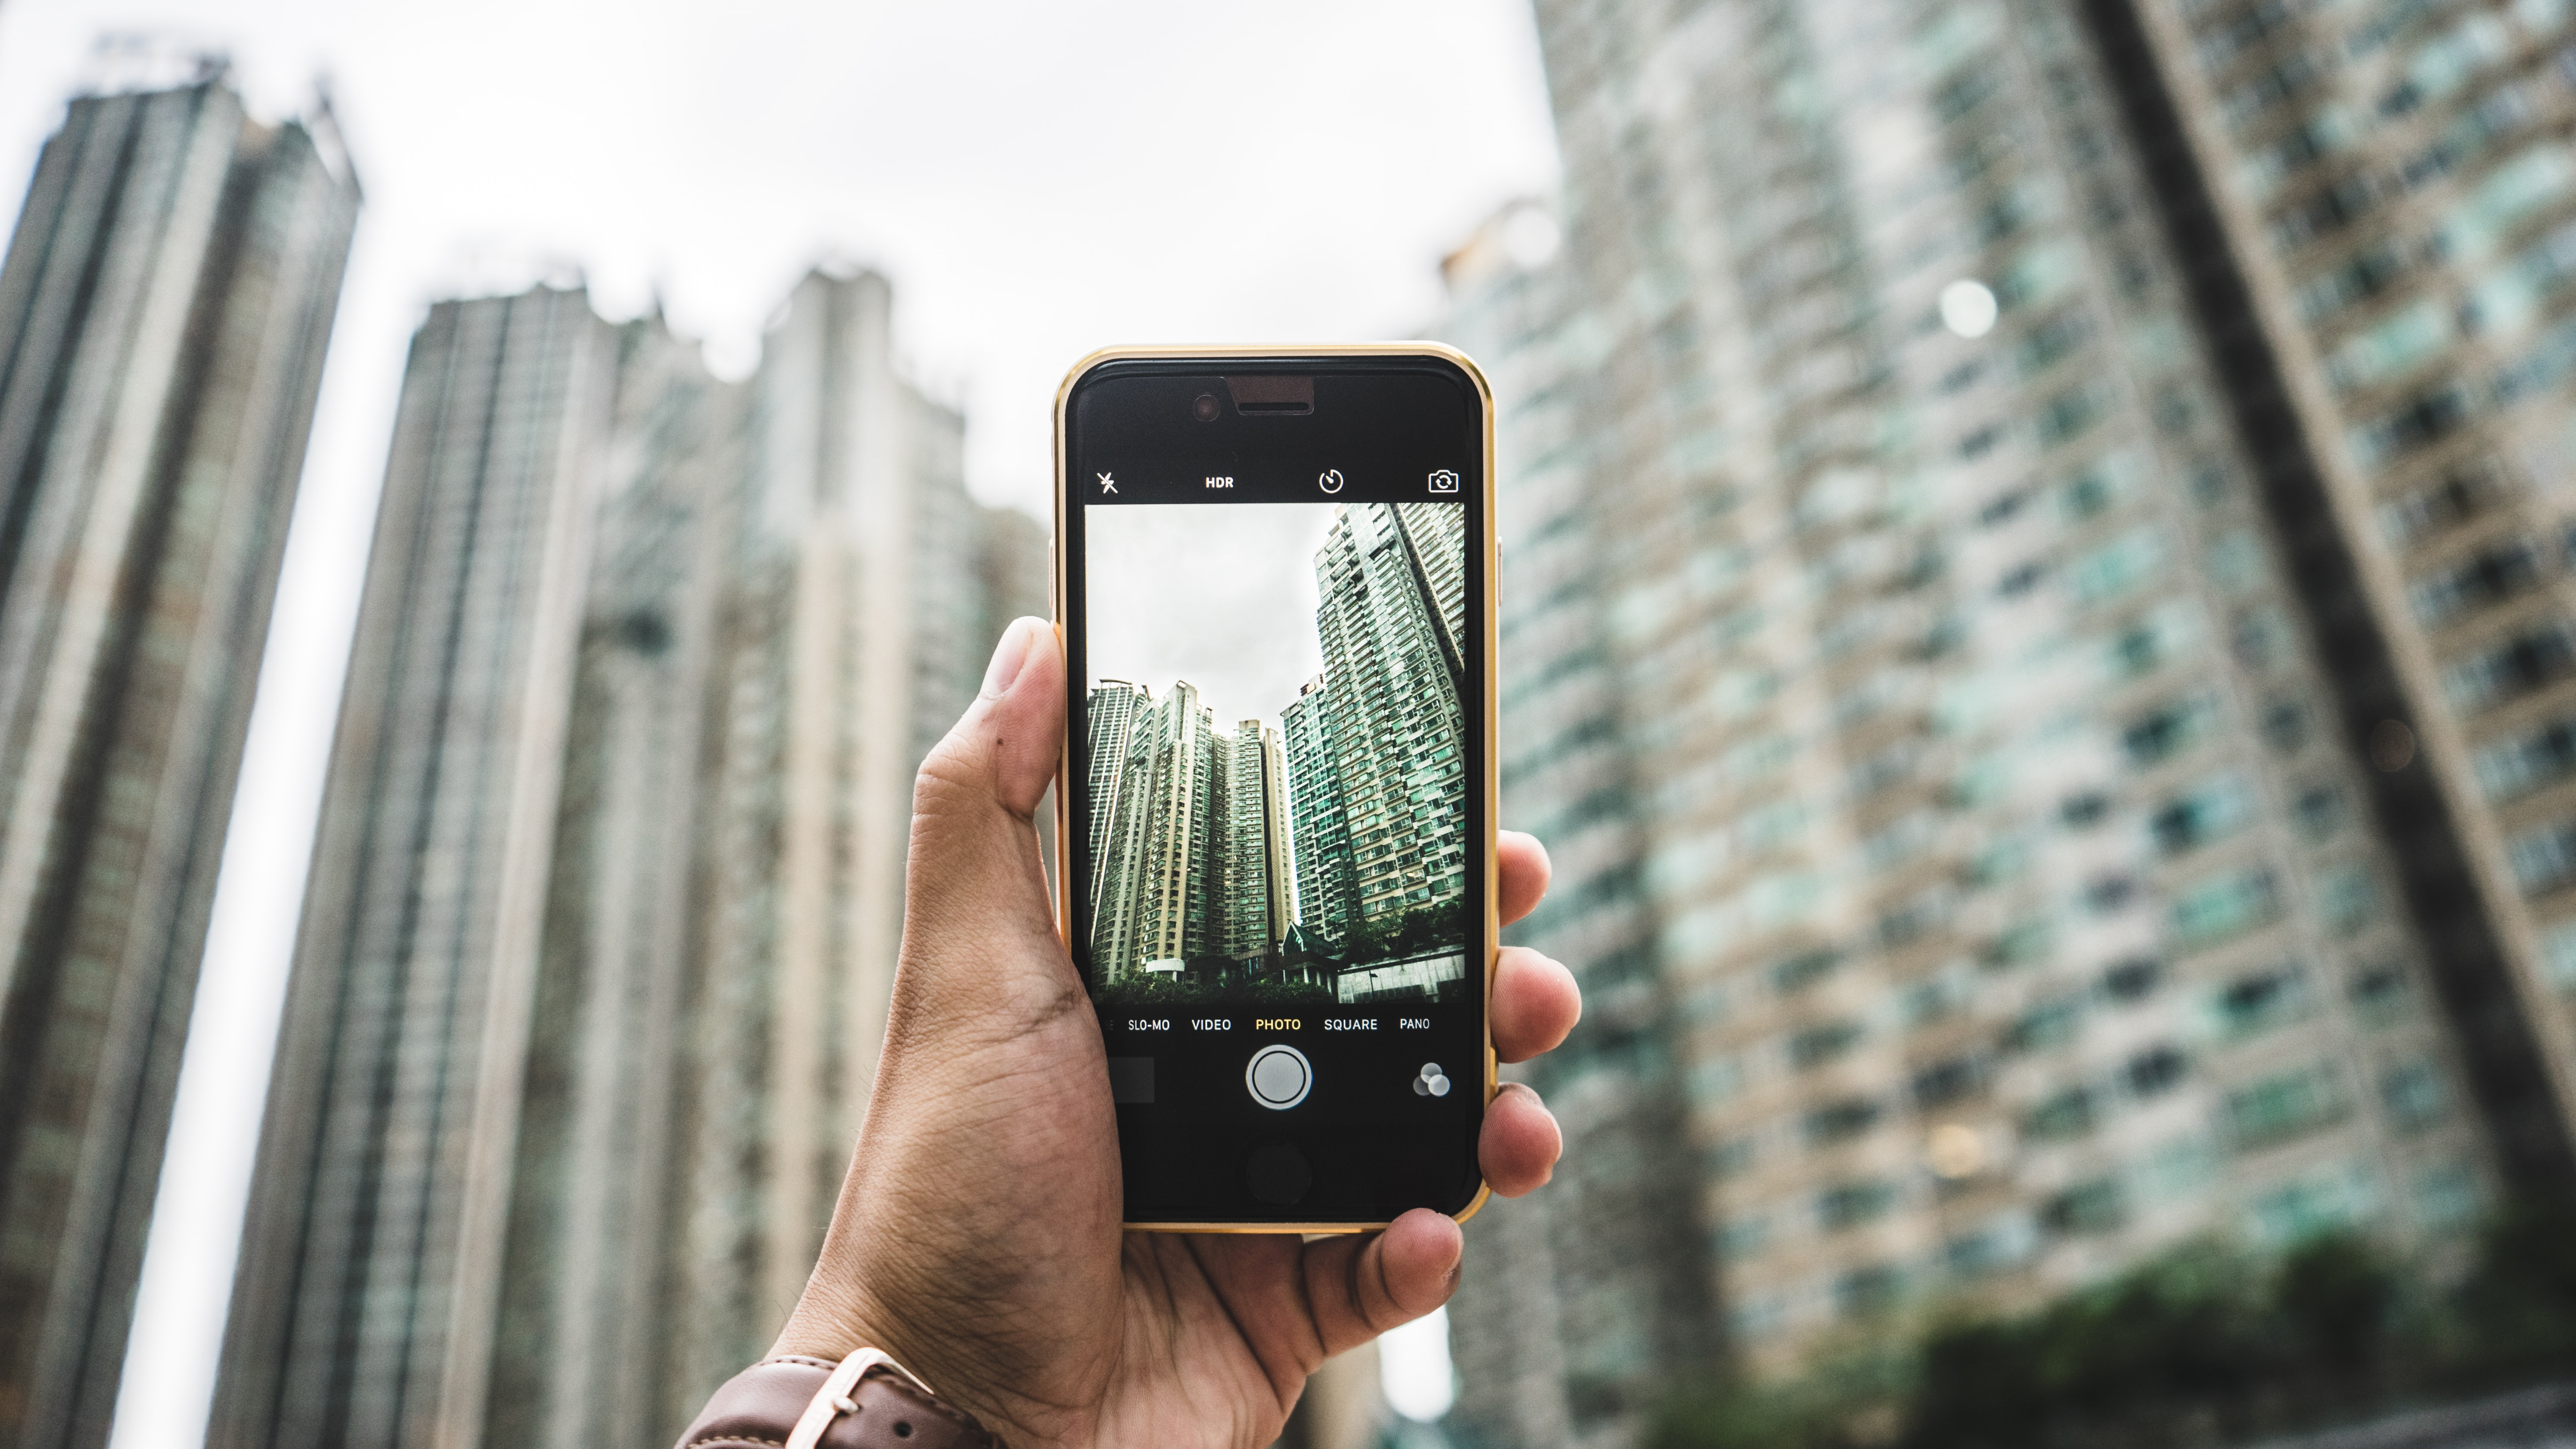 A person photographing skyscrapers in Hong Kong with an iPhone